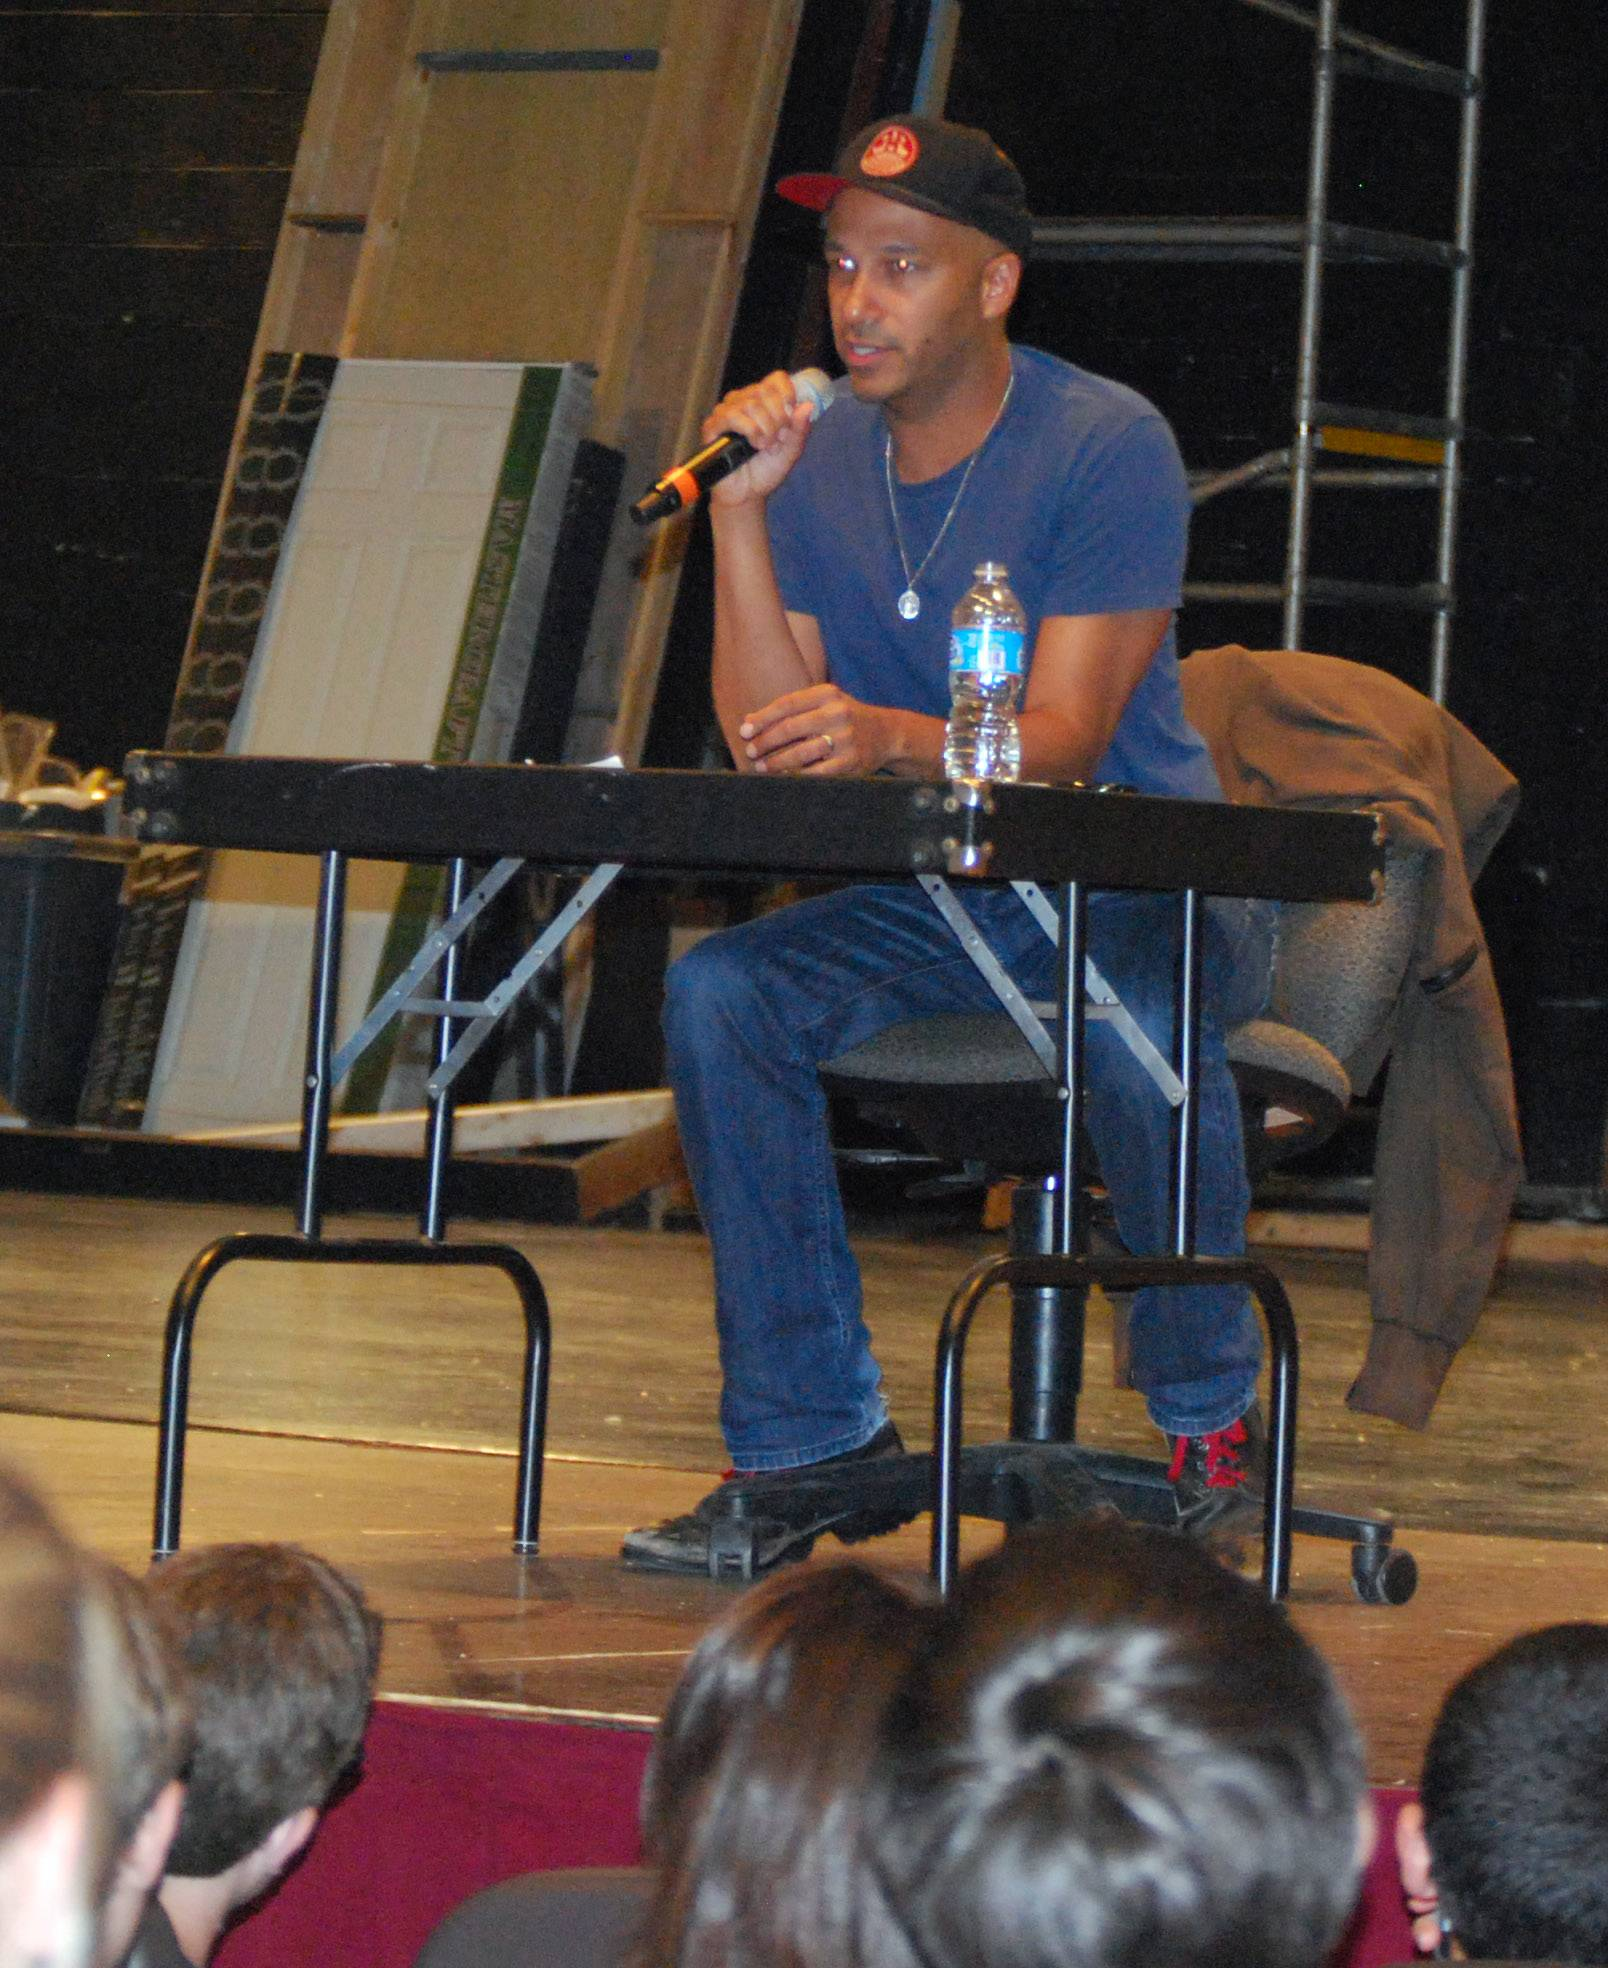 Libertyville High School alumni Tom Morello spoke to students during homecoming in 2012.